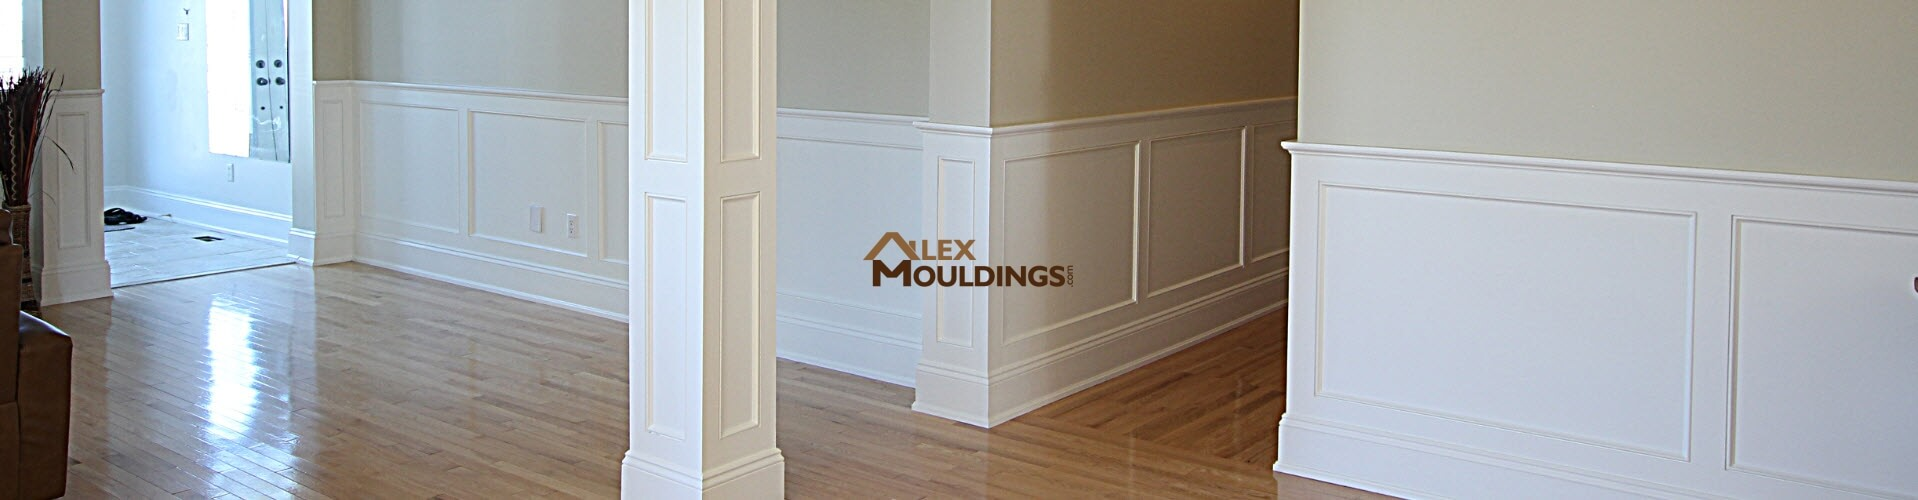 Modern Wainscoting in Living Room